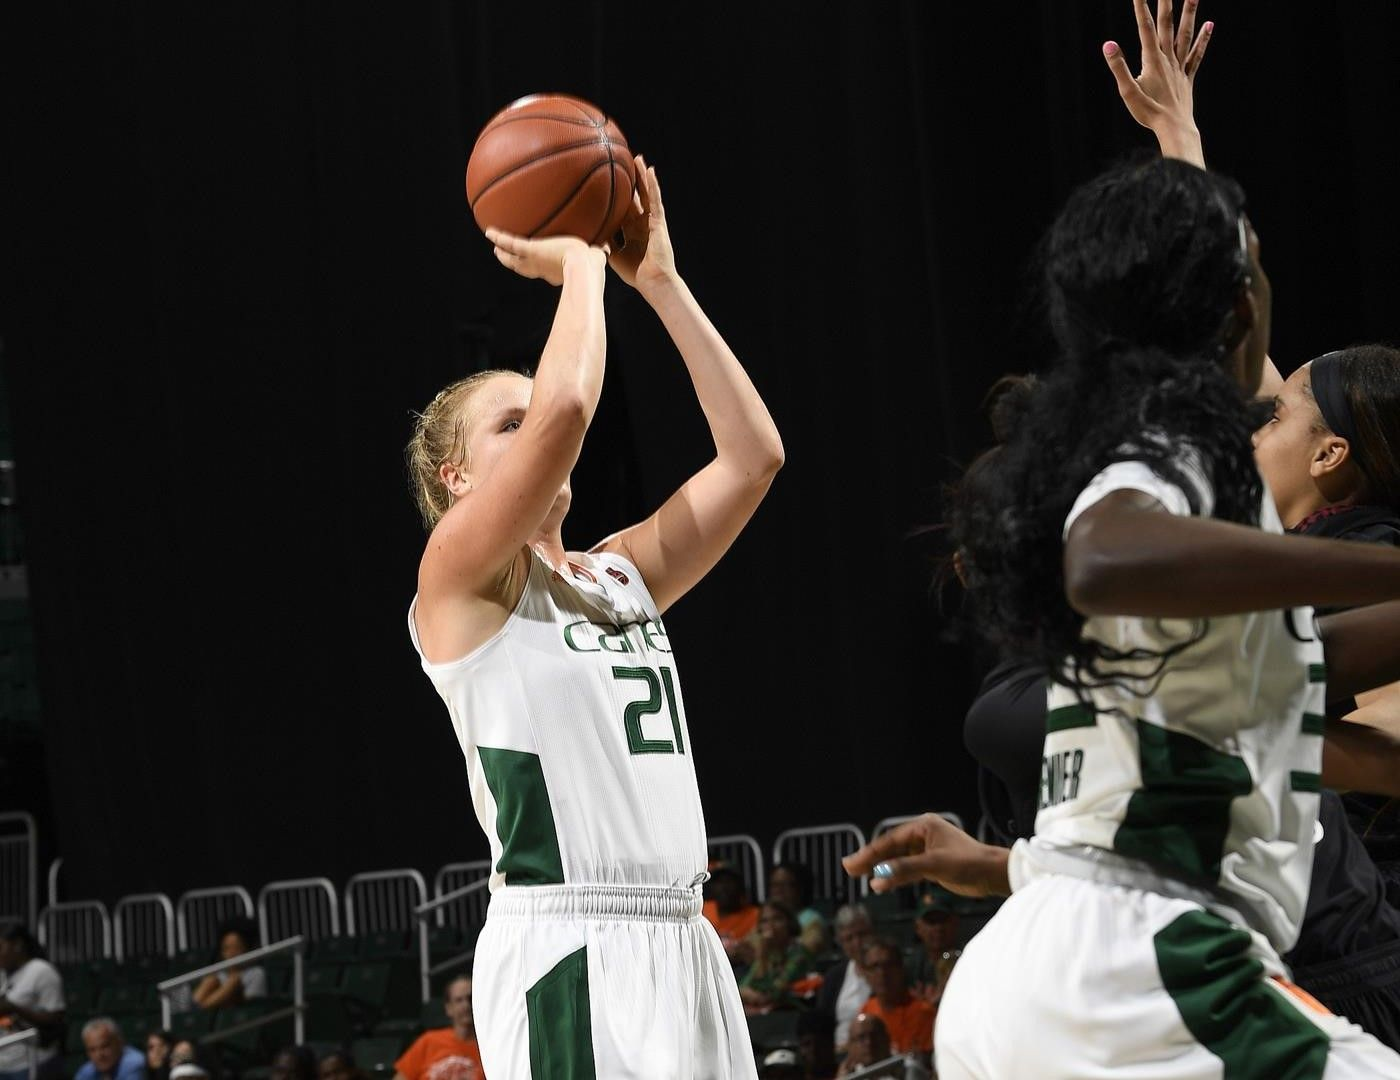 WBB Tallies 71-53 Win over Maryland Eastern Shore